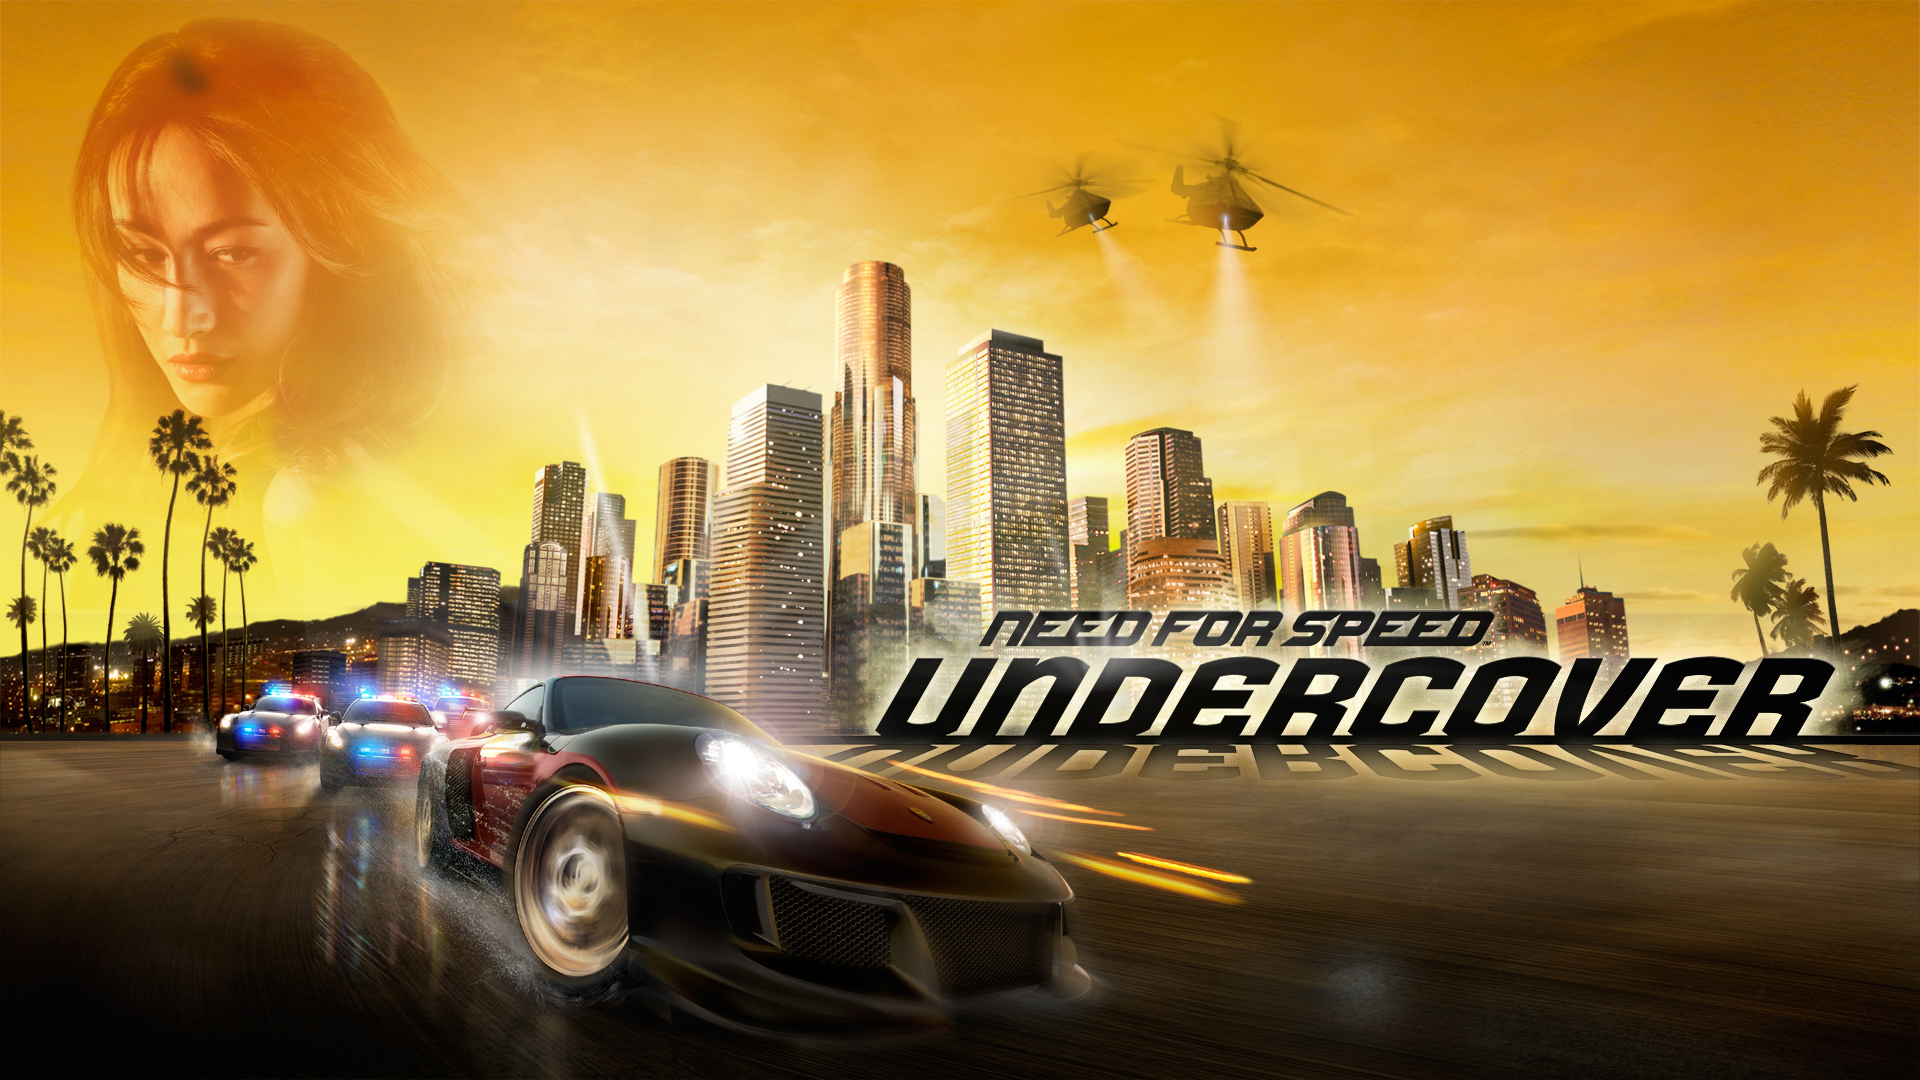 NFS Undercover Wallpapers